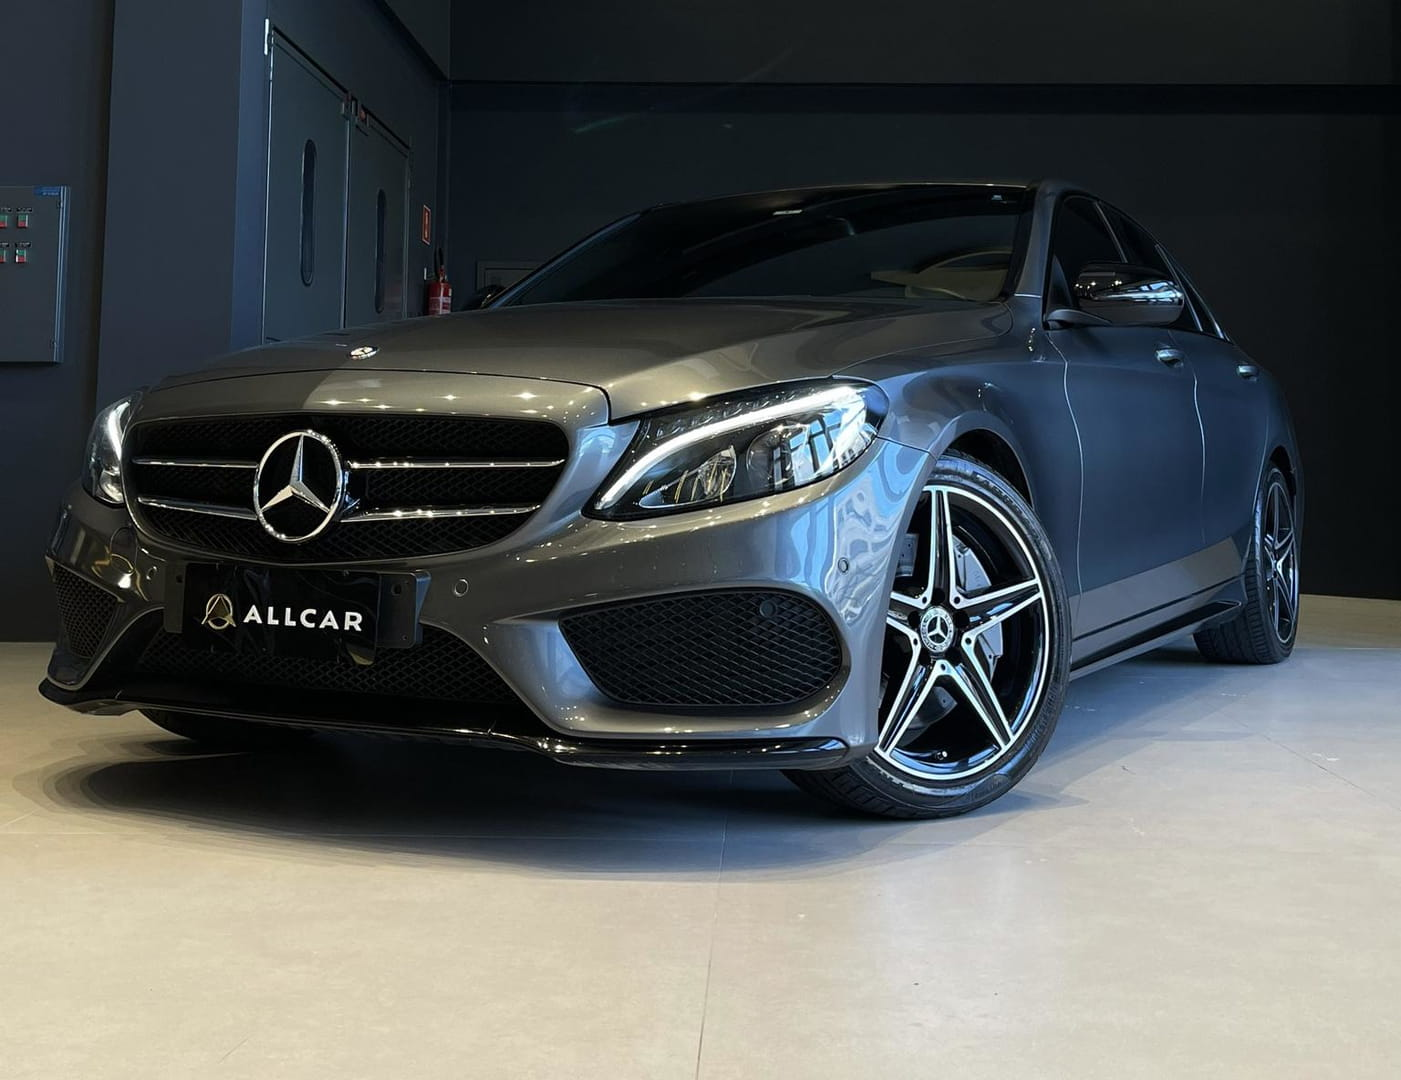 MERCEDES-BENZ C 300 SPORT 2.0 TURBO 9G-TRONIC